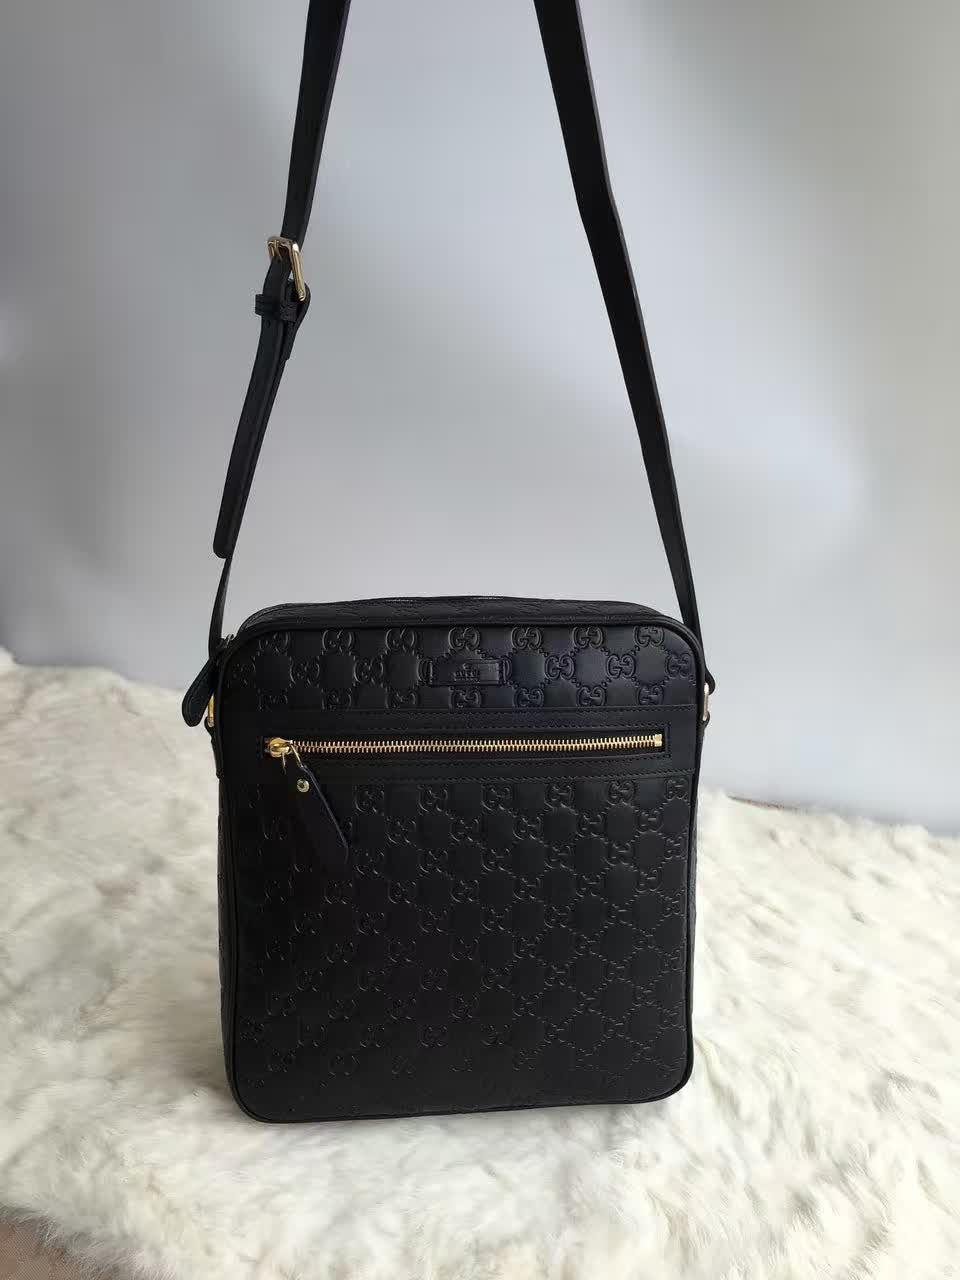 gucci Bag, ID : 56436(FORSALE:a@yybags.com), gucci handbags online, gucci handbags for less, gucci backpack luggage, gucci opening hours, gucci spring sale, gucci leather laptop backpack, gucci best backpacks, gucci bags, gucci personalized backpacks, gucci buy purse, gucci women's handbags, gucci leather attache case, gucci authentic designer handbags #gucciBag #gucci #gucci #usa